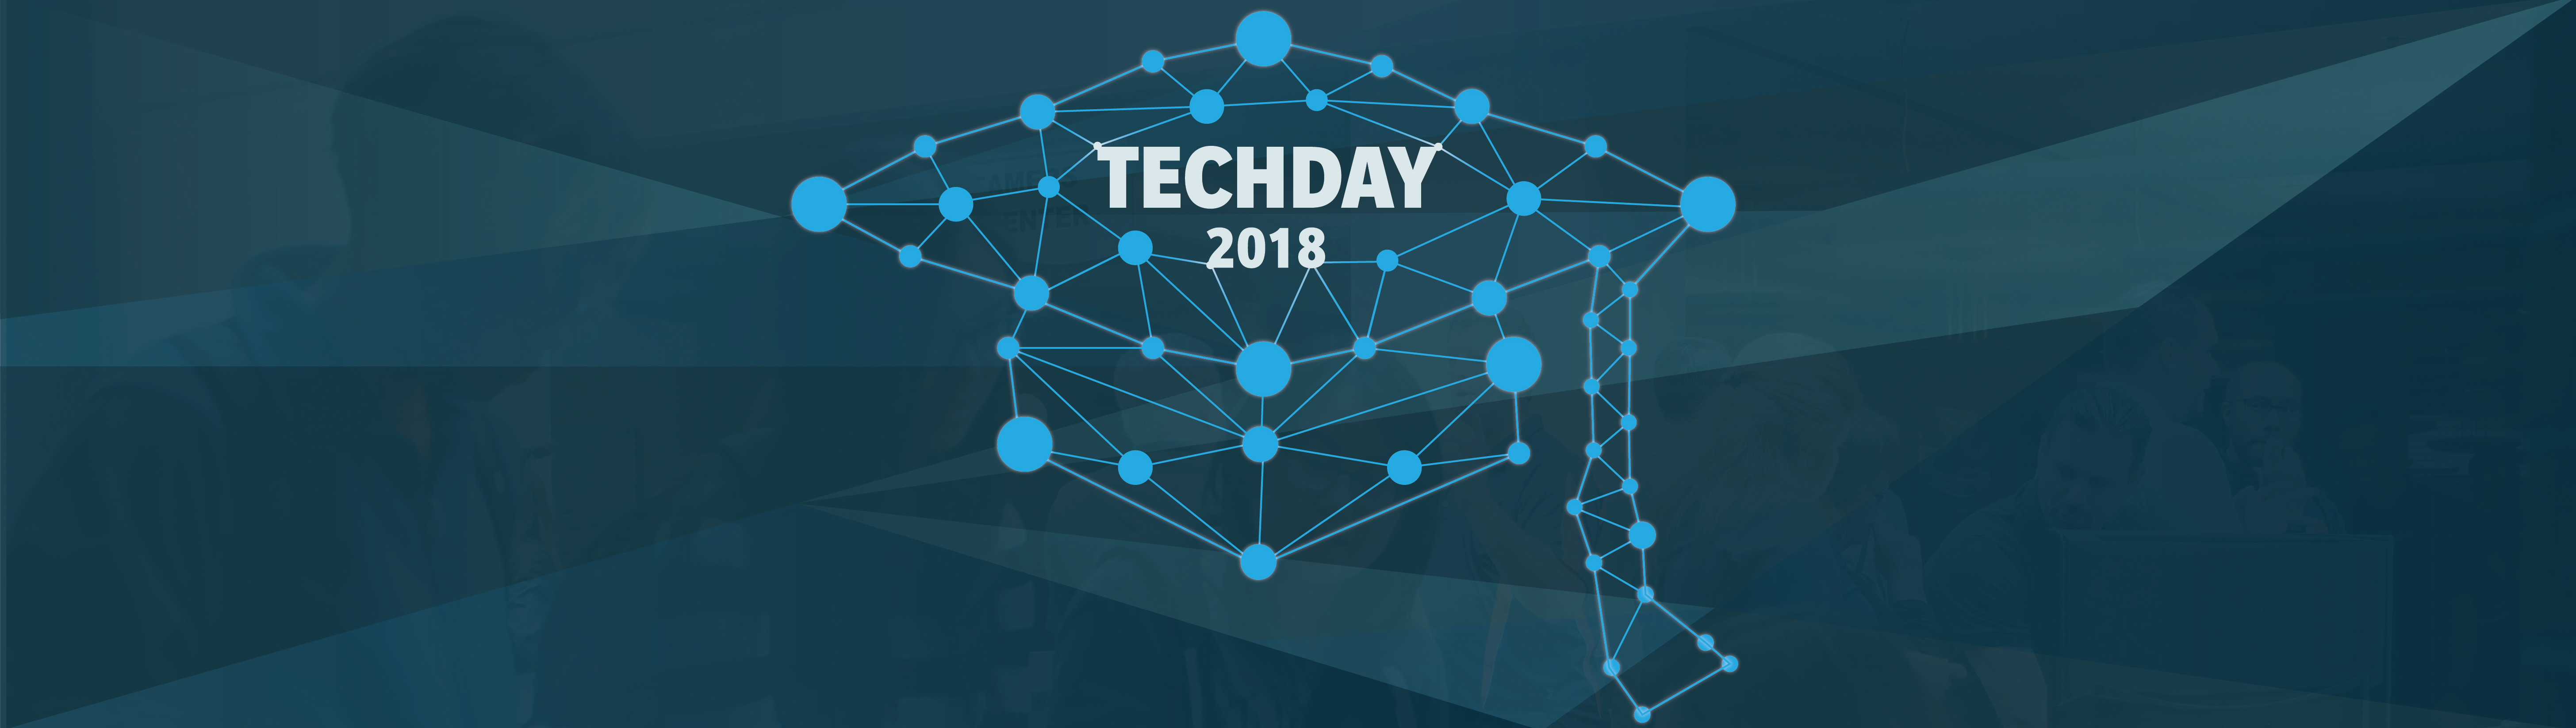 TechDay 2018 TechDay2018 Division of Information